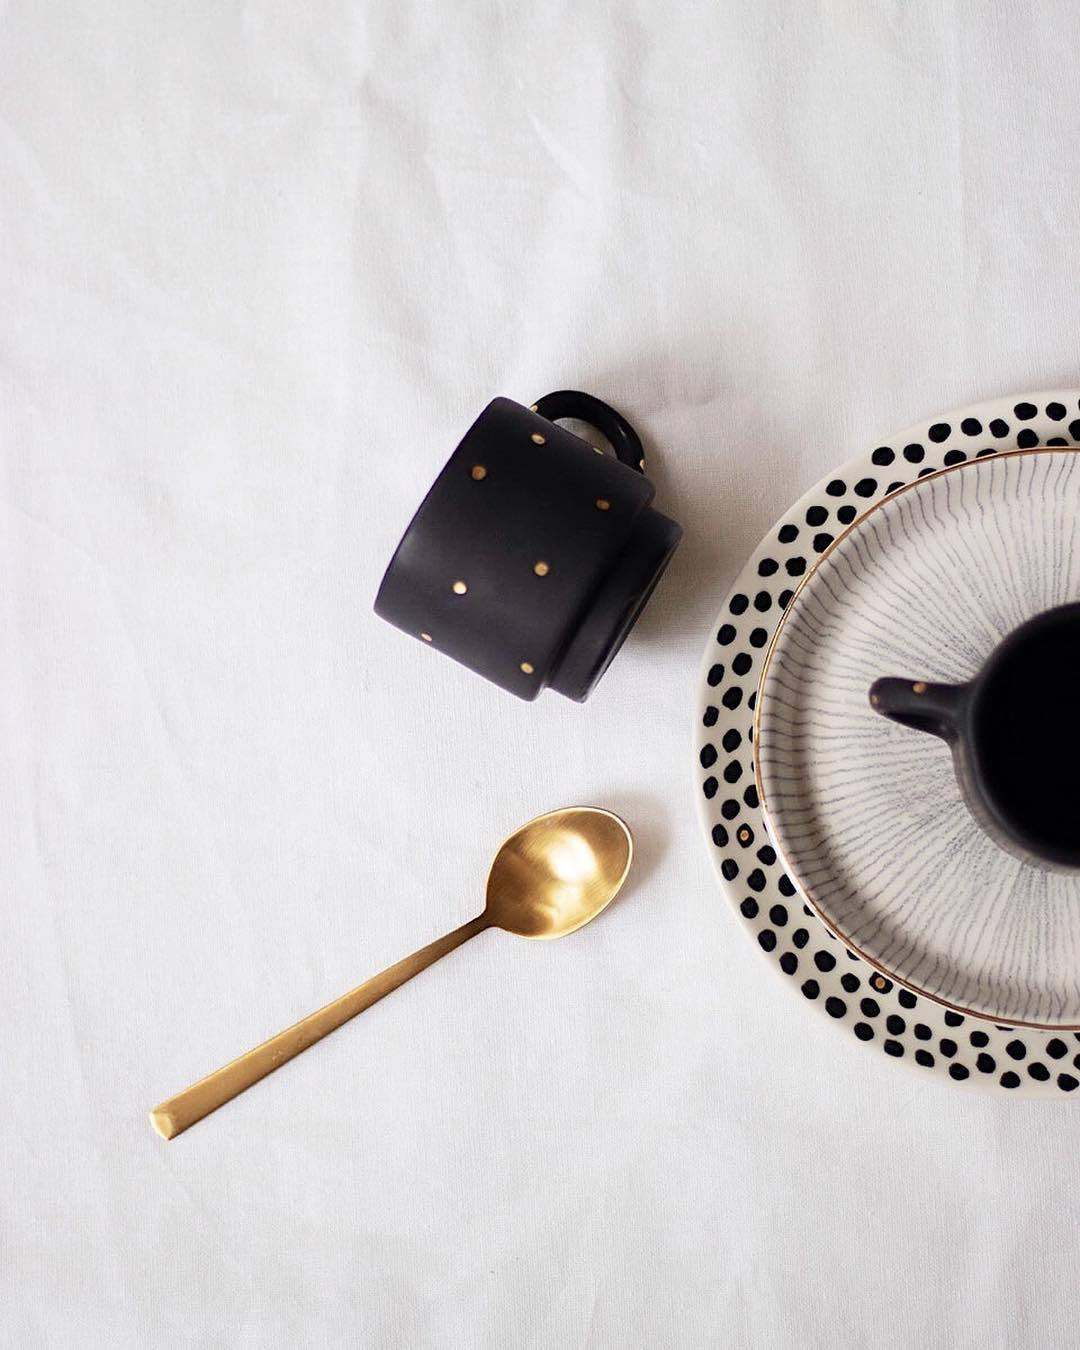 Homes in Colour - Matte Black Coffee Cup with Golden Polka Dots - A Luz Natural